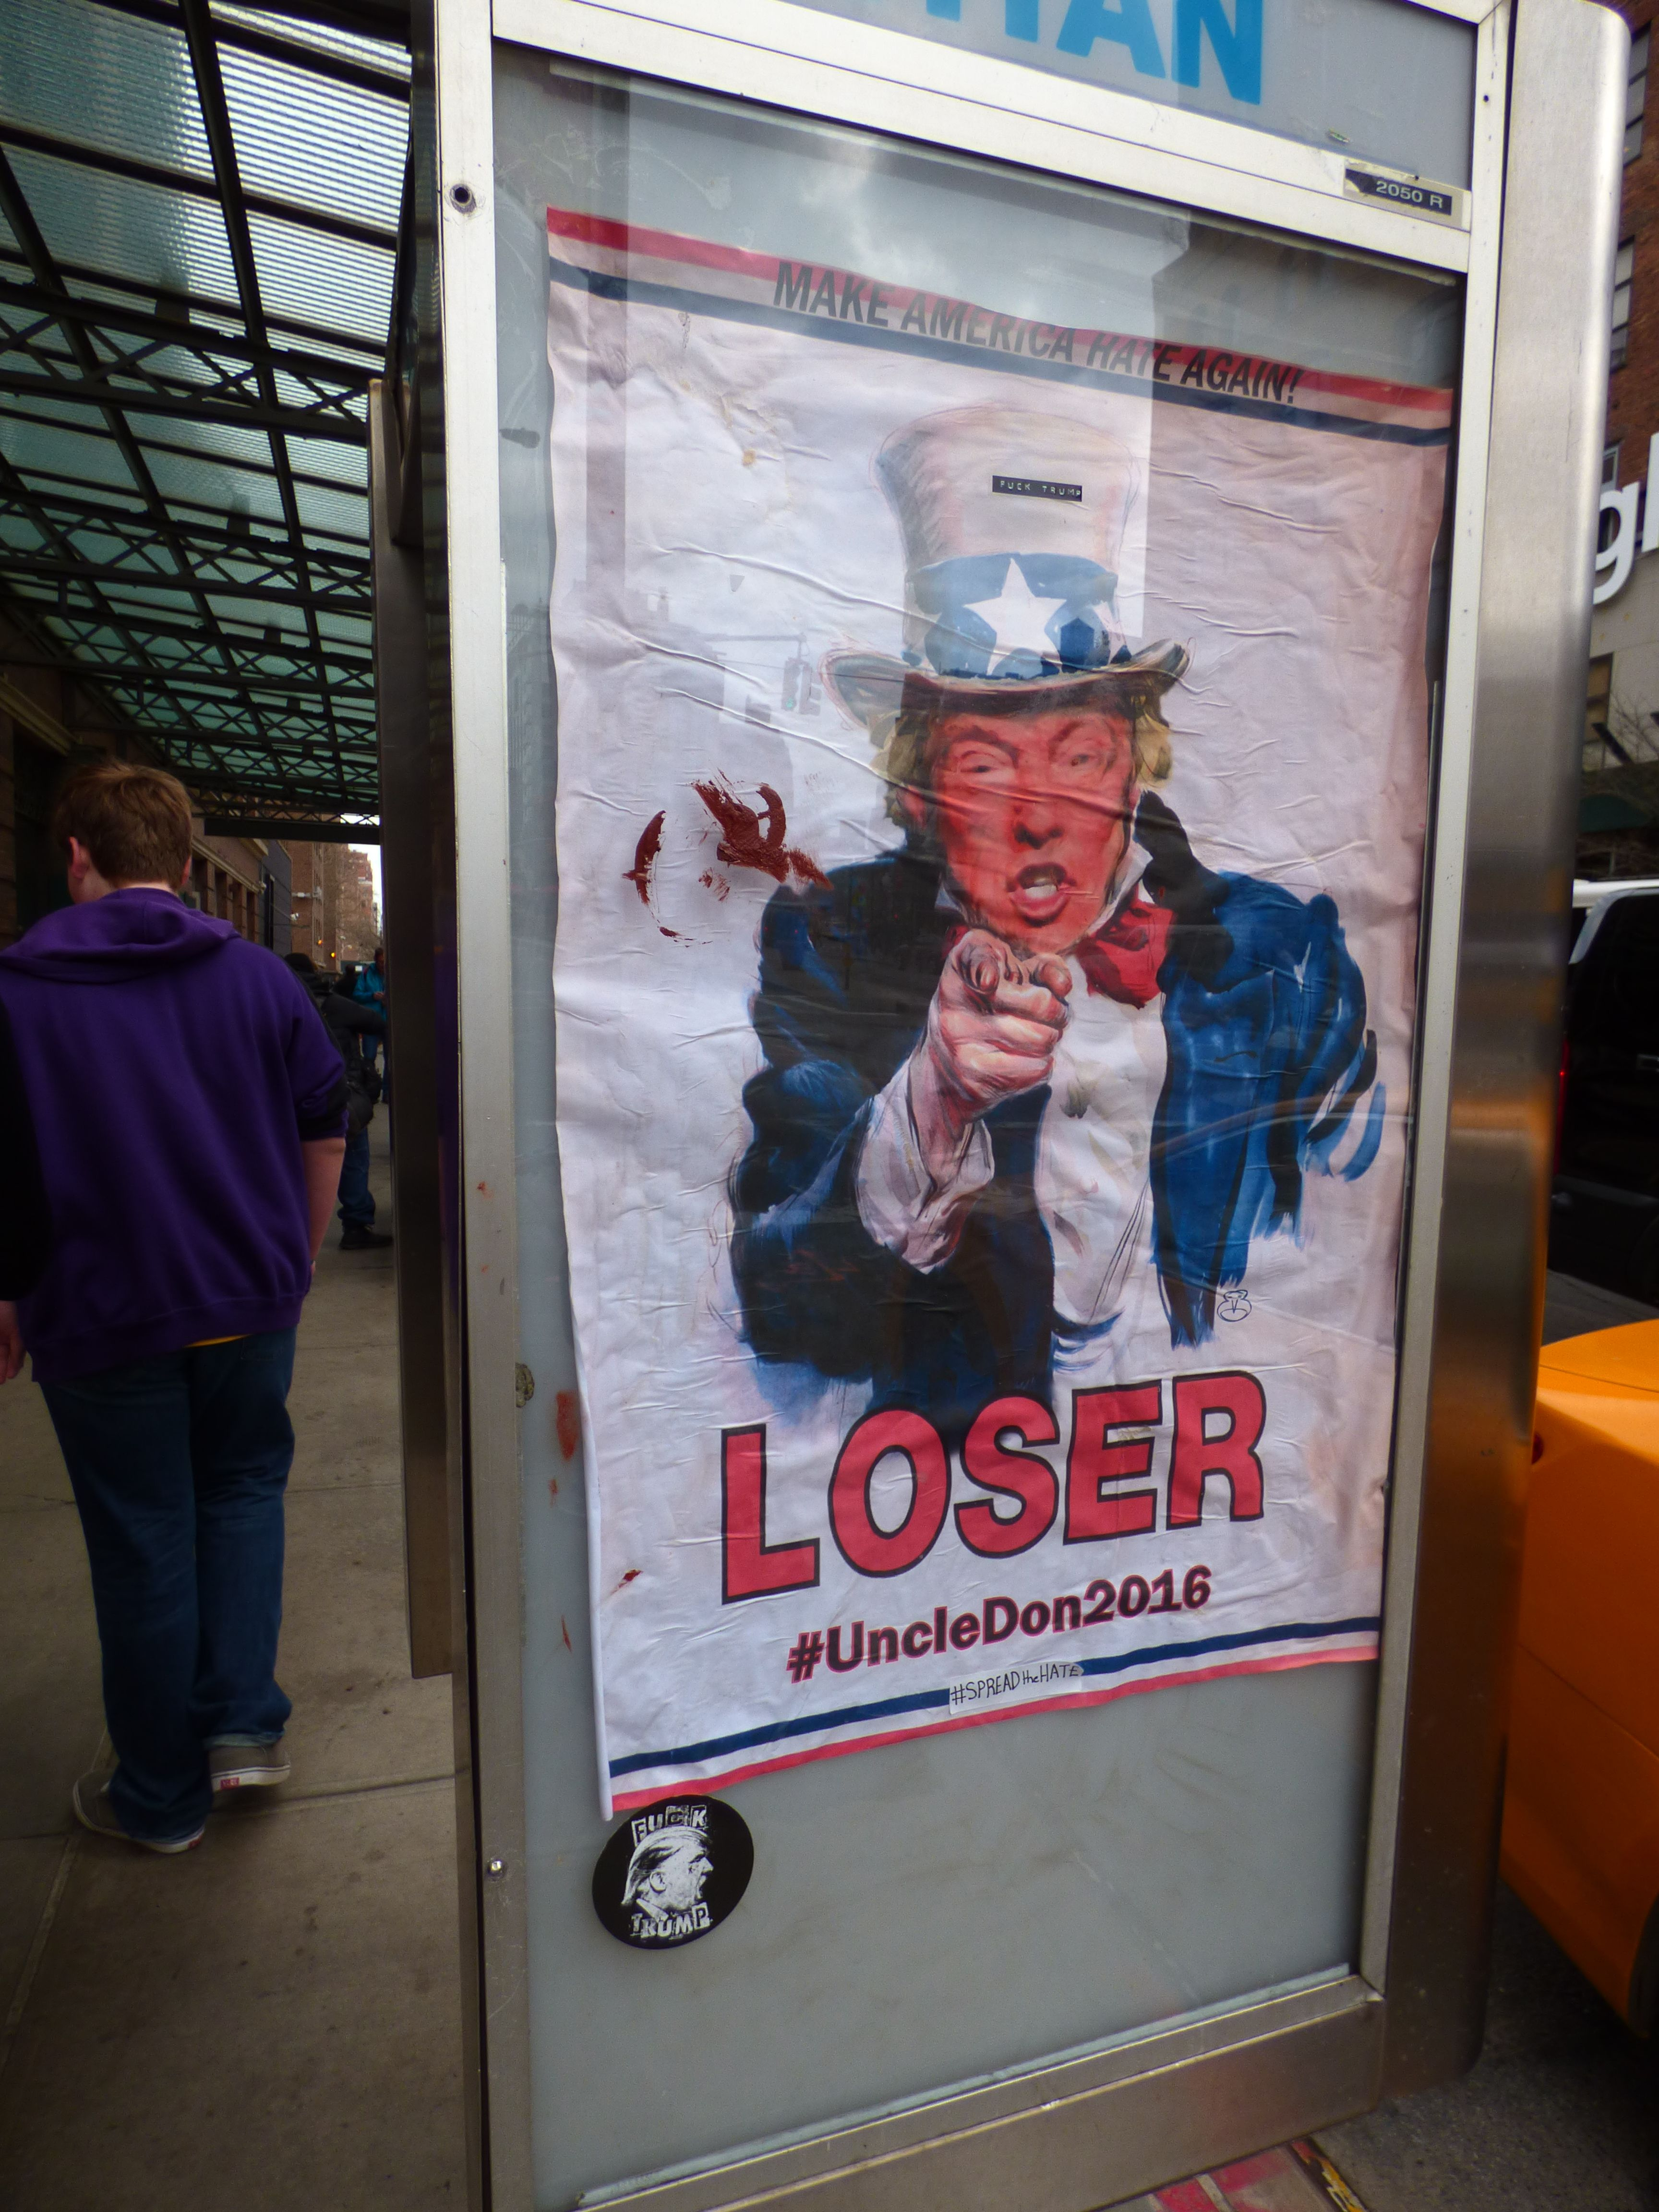 Keep your eyes open, you never know what you might see.  The political game is alive and well in the big apple.